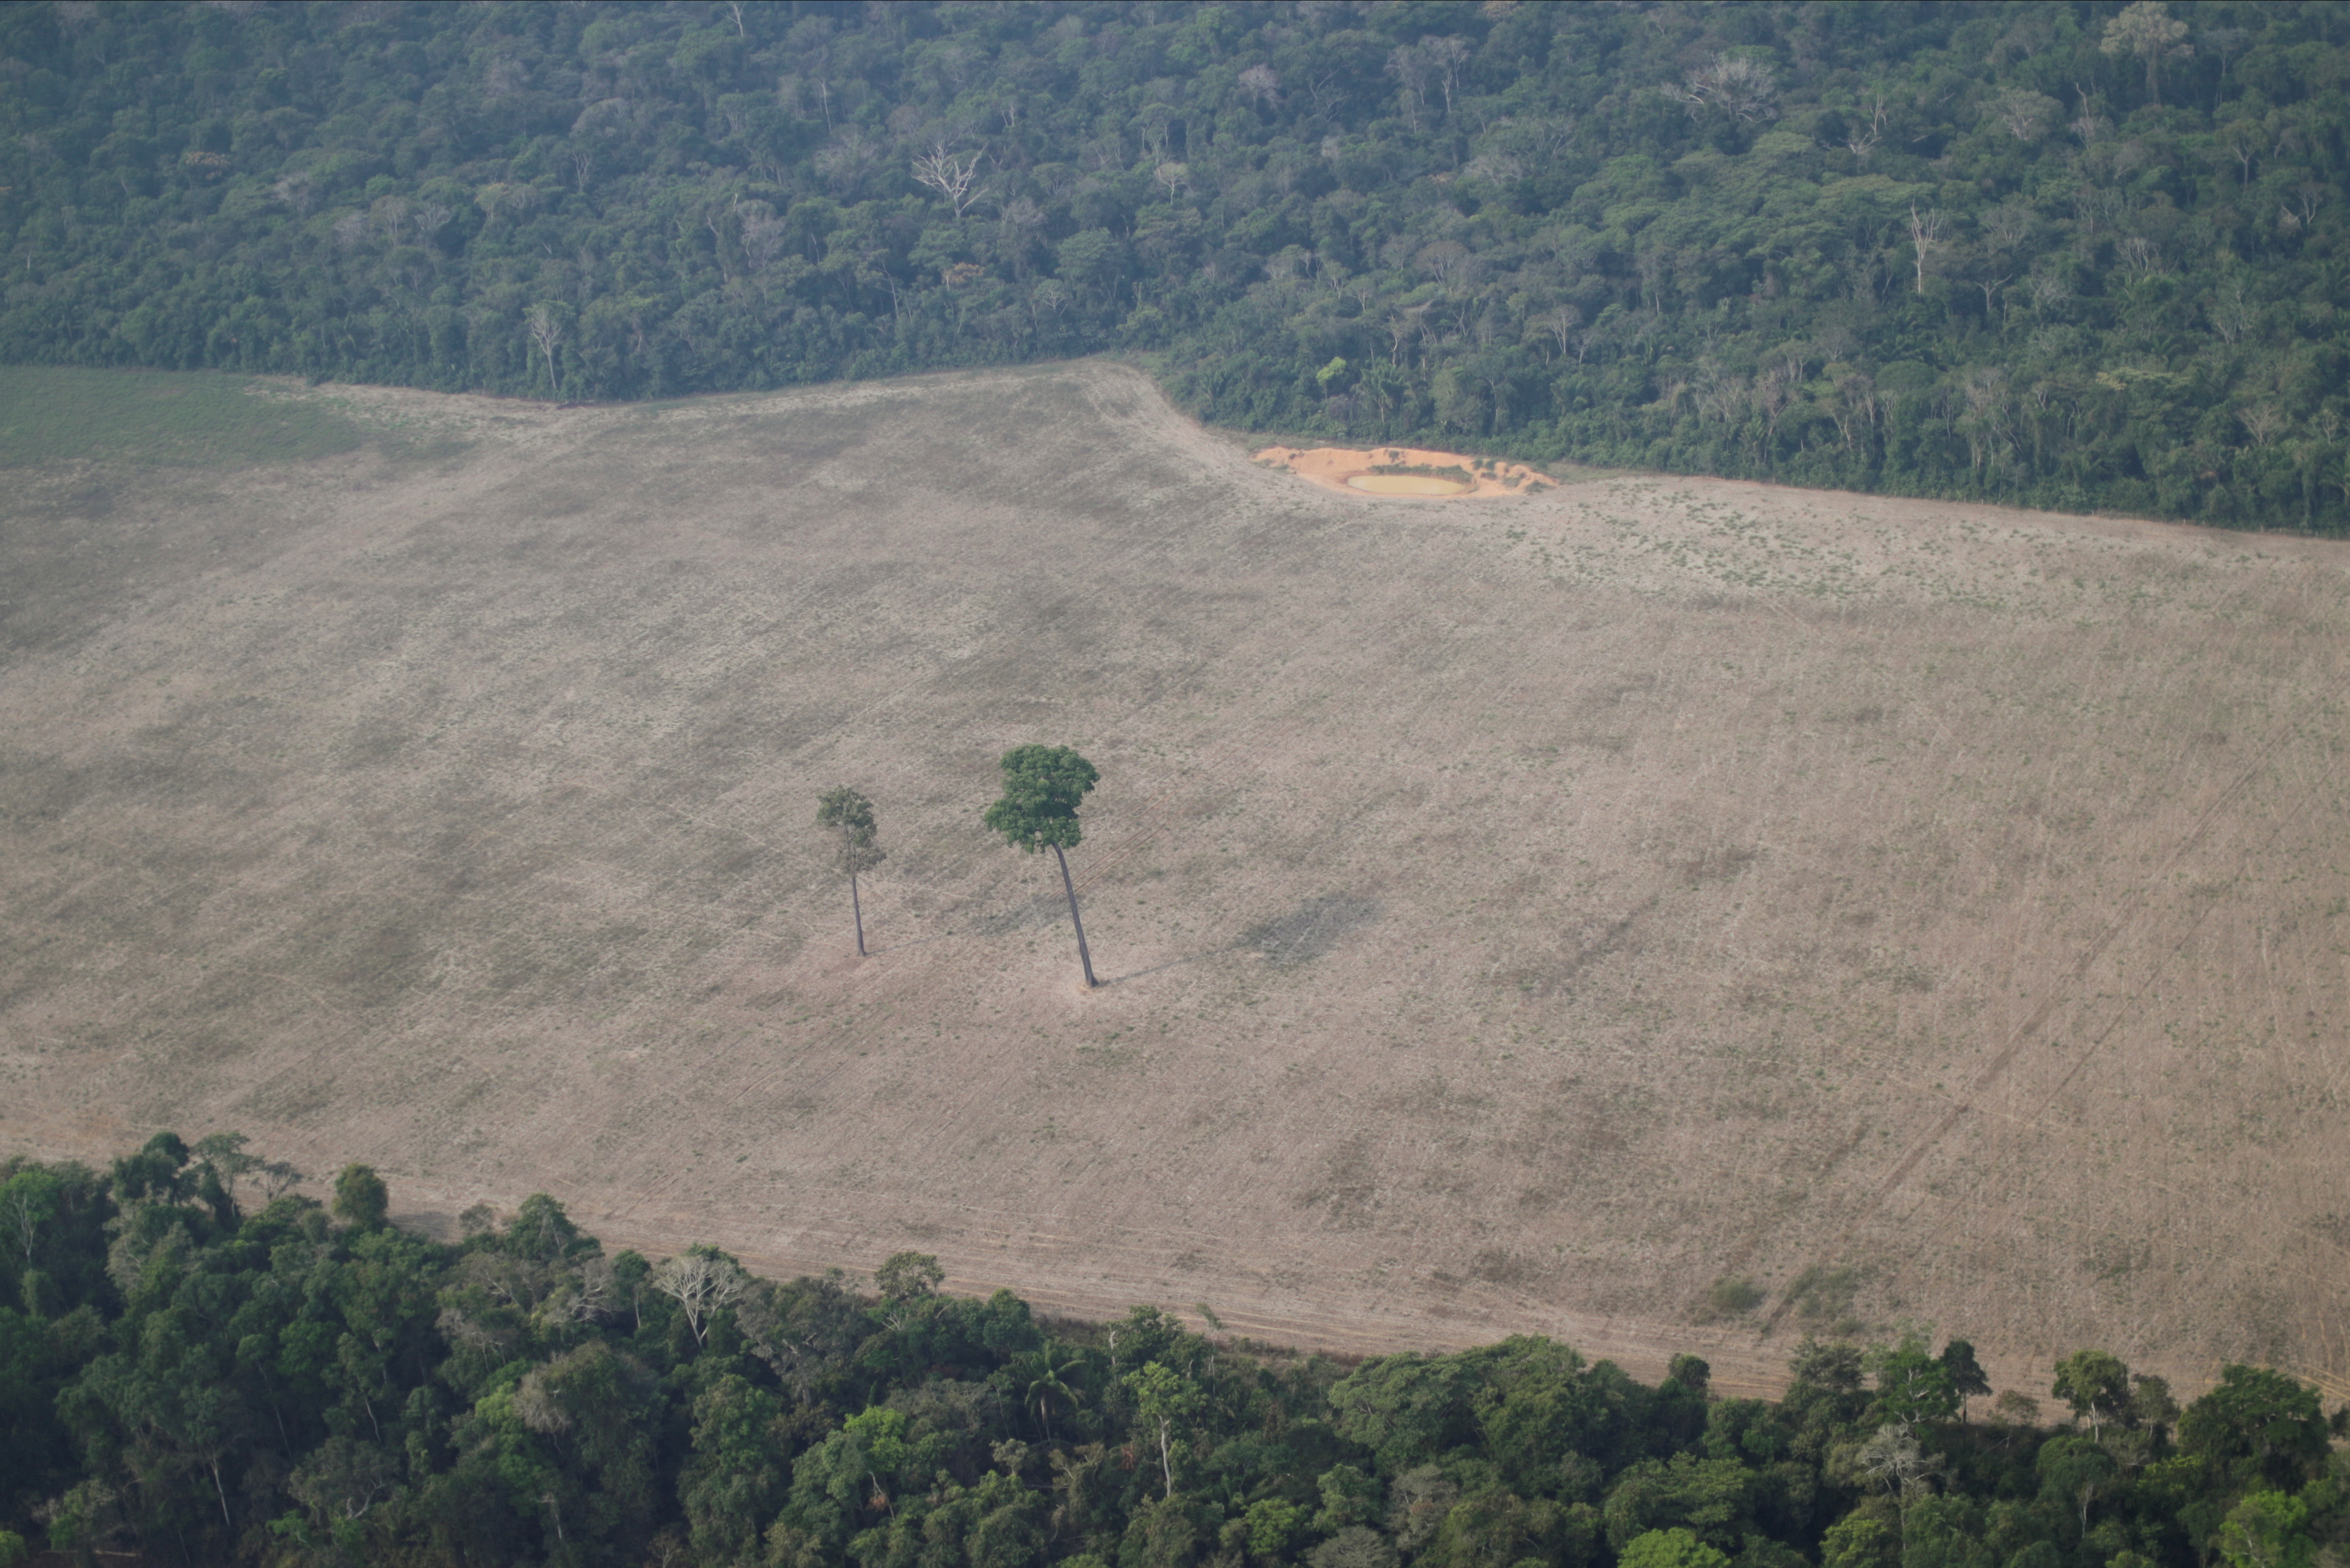 An aerial view shows a tree at the center of a deforested plot of the Amazon near Porto Velho, Rondonia State, Brazil August 14, 2020.